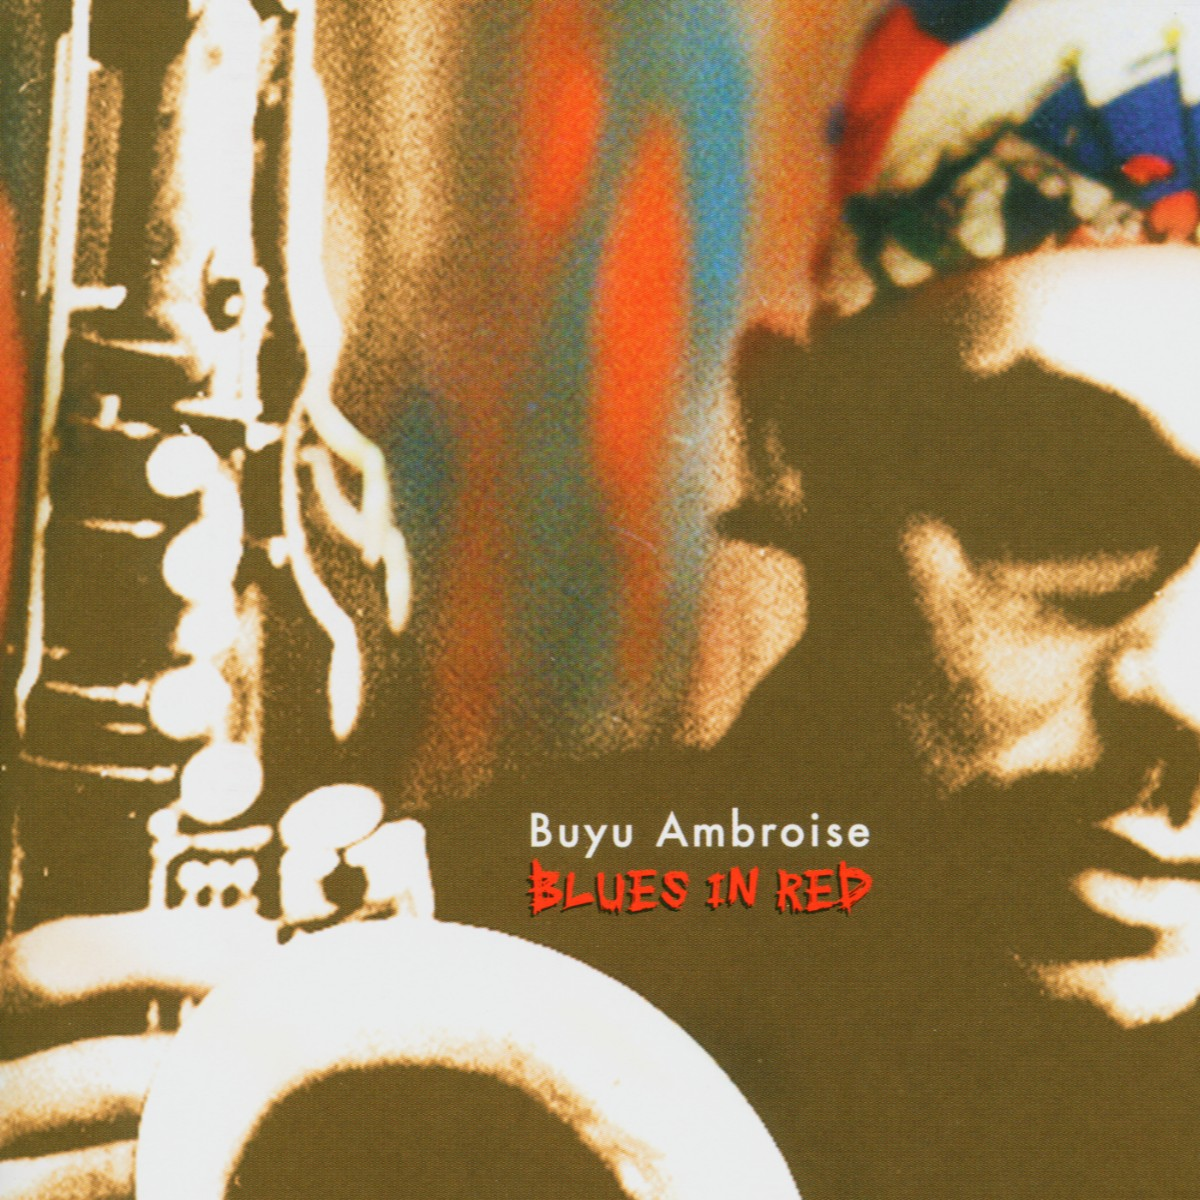 Buyu-Ambroise-Blues-in-Red